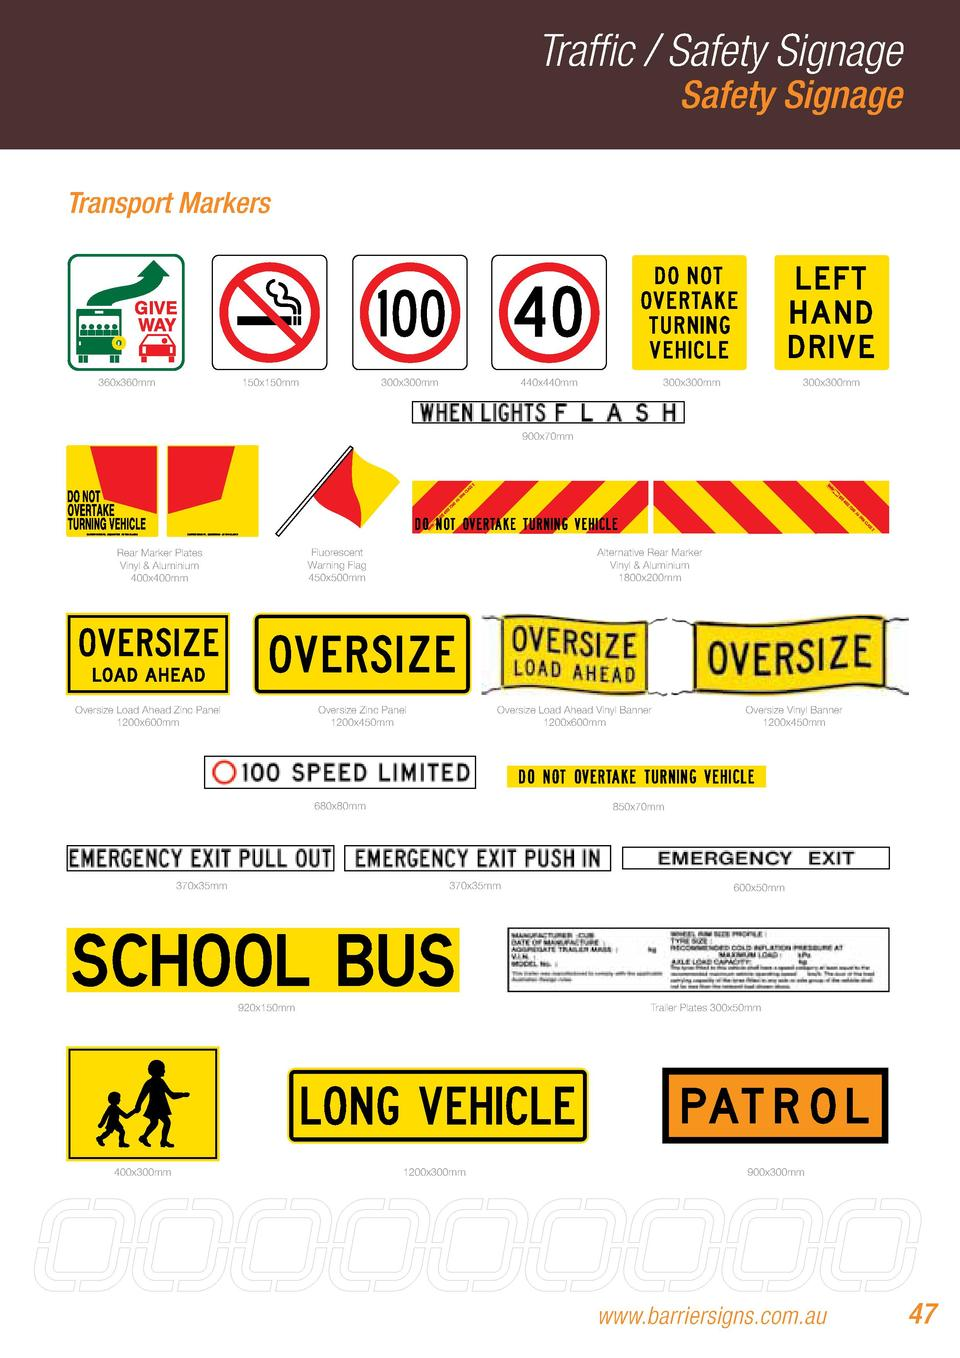 Traffic   Safety Signage Safety Signage  Transport Markers  360x360mm  150x150mm  300x300mm  440x440mm  300x300mm  300x300...